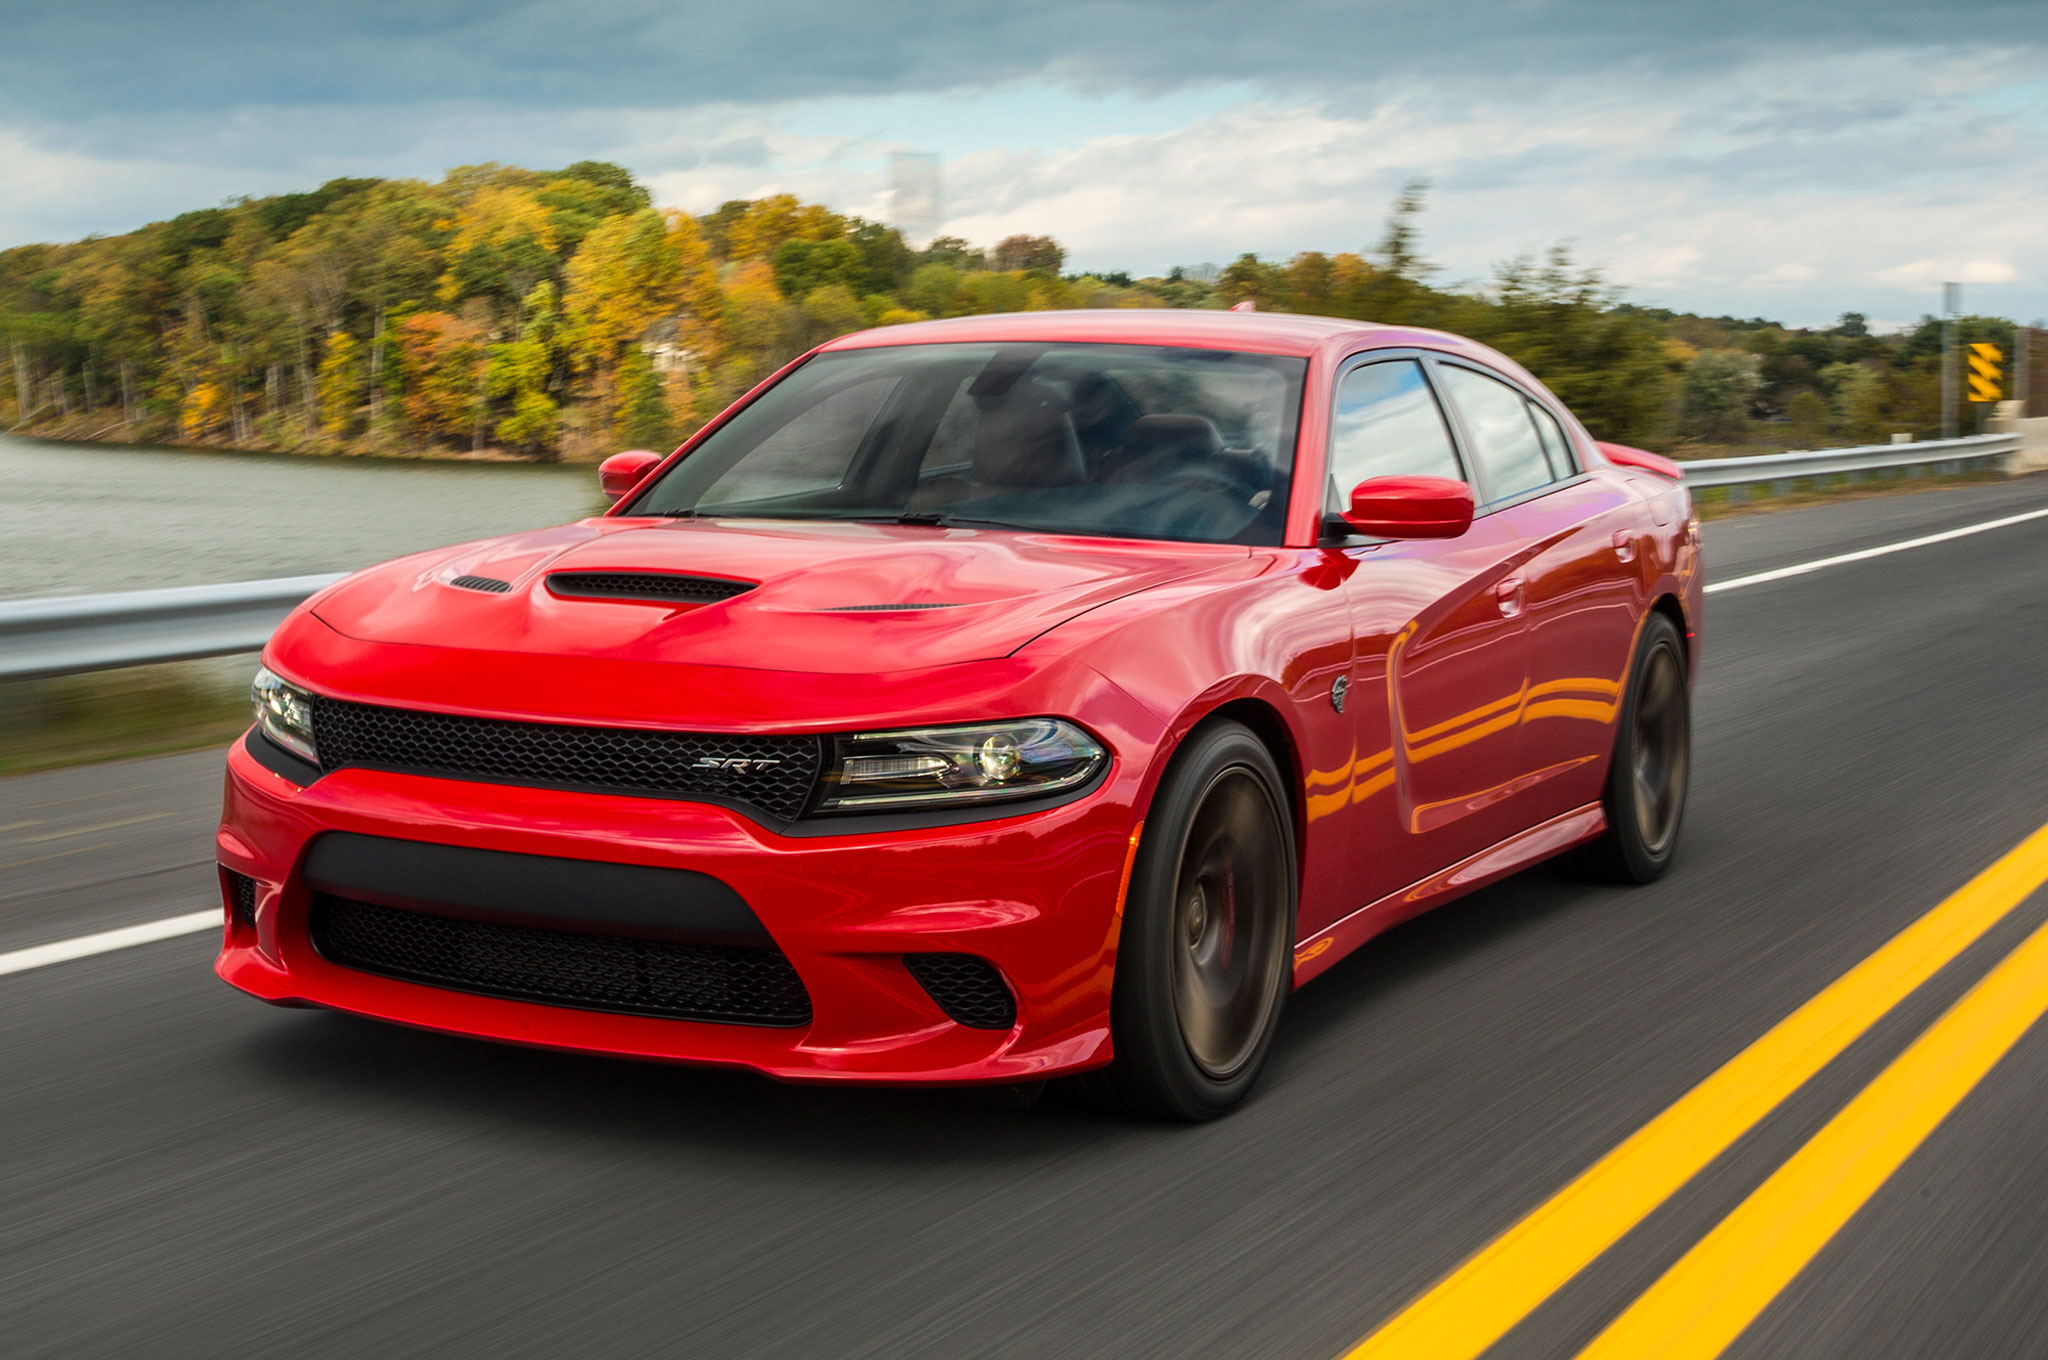 2016 Dodge Challenger Charger Hellcat Prices Increase 3 650 4 200